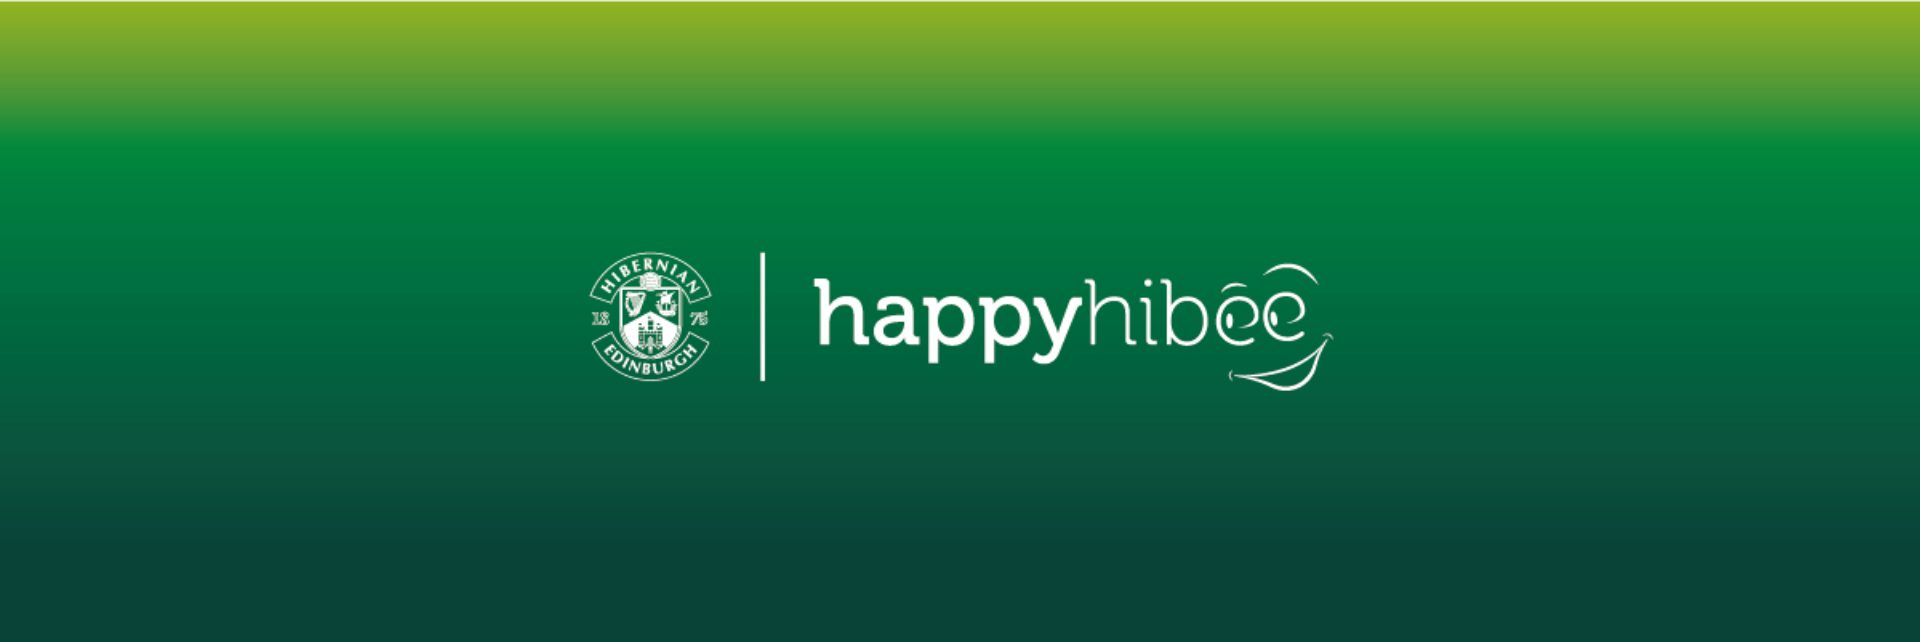 Happy Hibee Rebrand Images 06